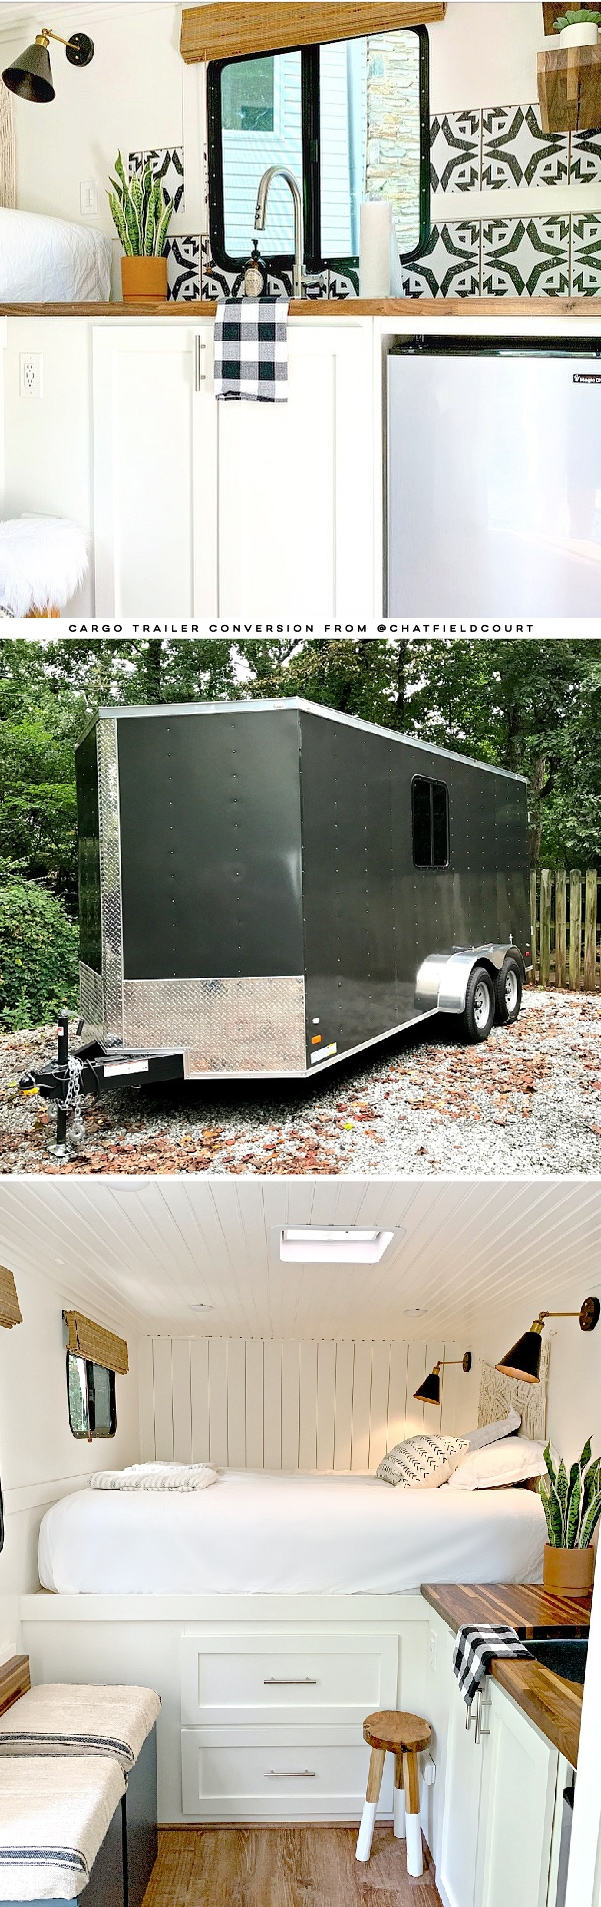 Cargo Trailer RV Conversion from @ChatfieldCourt